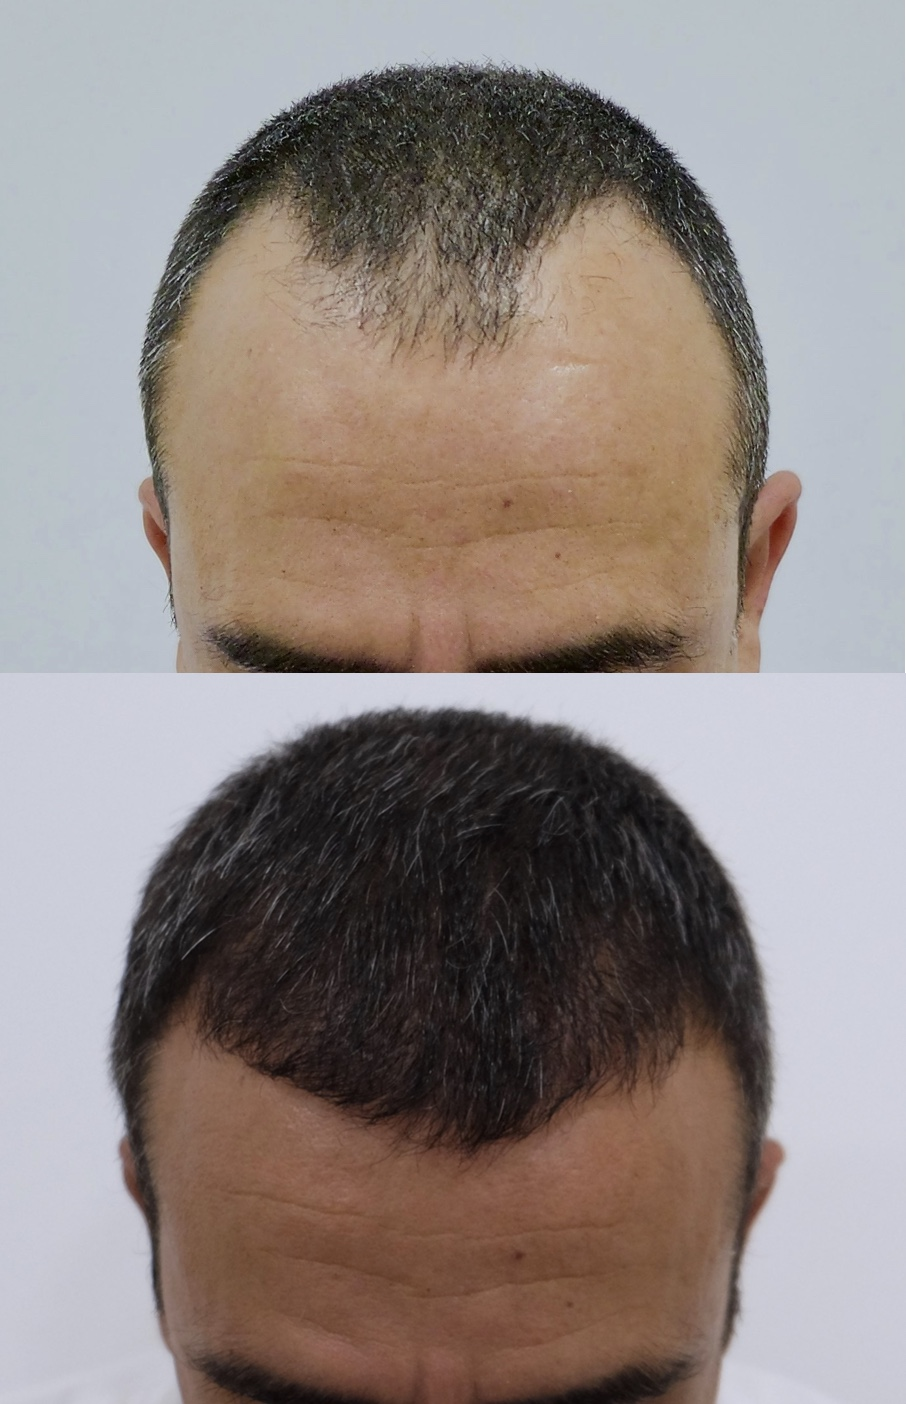 46 years old.  Reconstruction of hairline and frontal third.  3000 Follicular Units transplanted.  NOTE: 5 months evolution.   NOT FINAL RESULT